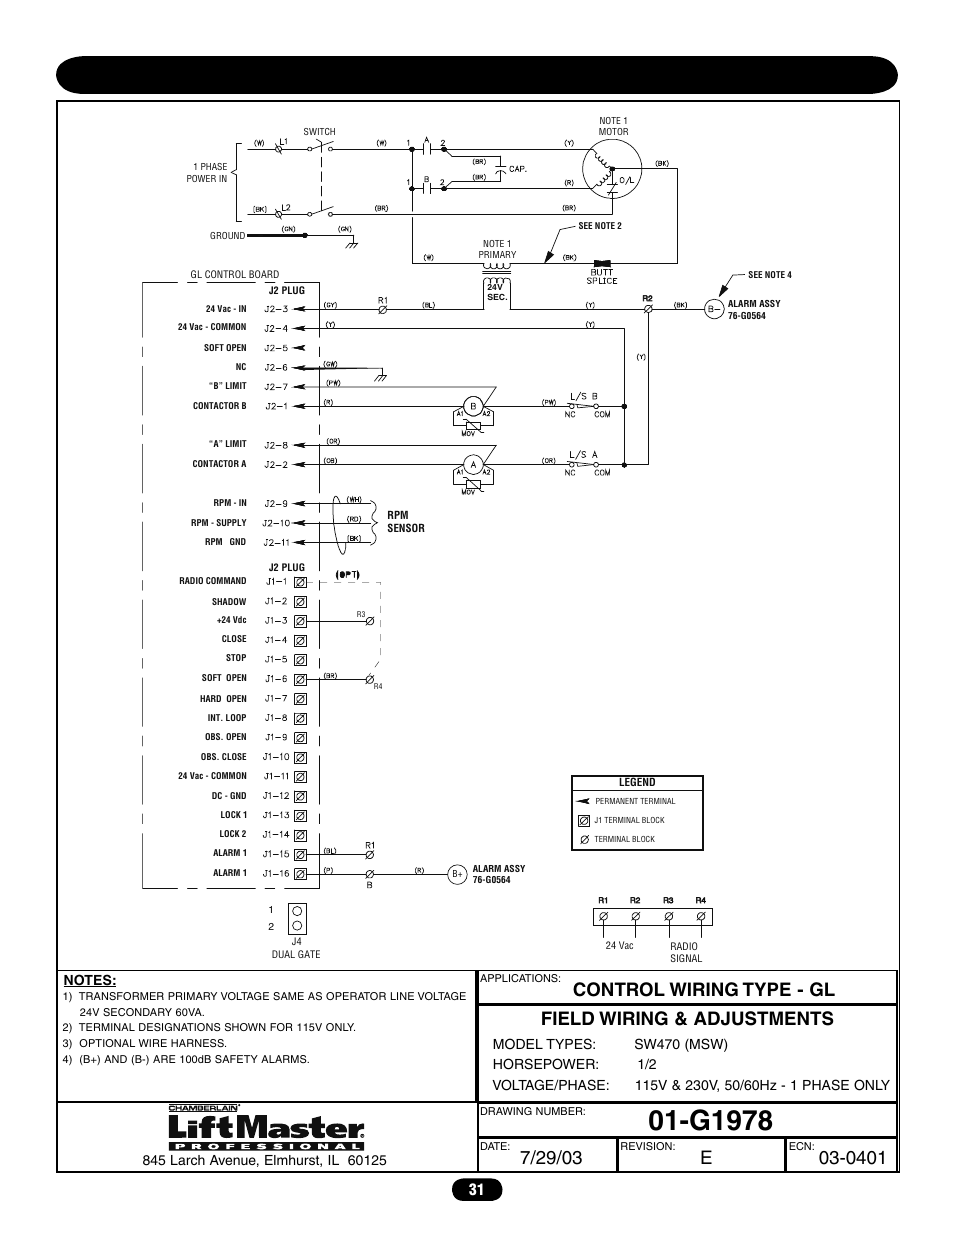 Single phase wiring diagram (sw470), G1978 | Chamberlain LIFTMASTER  PROFESSIONAL SW470 User Manual | Page 31 / 40 | Original modeManuals Directory